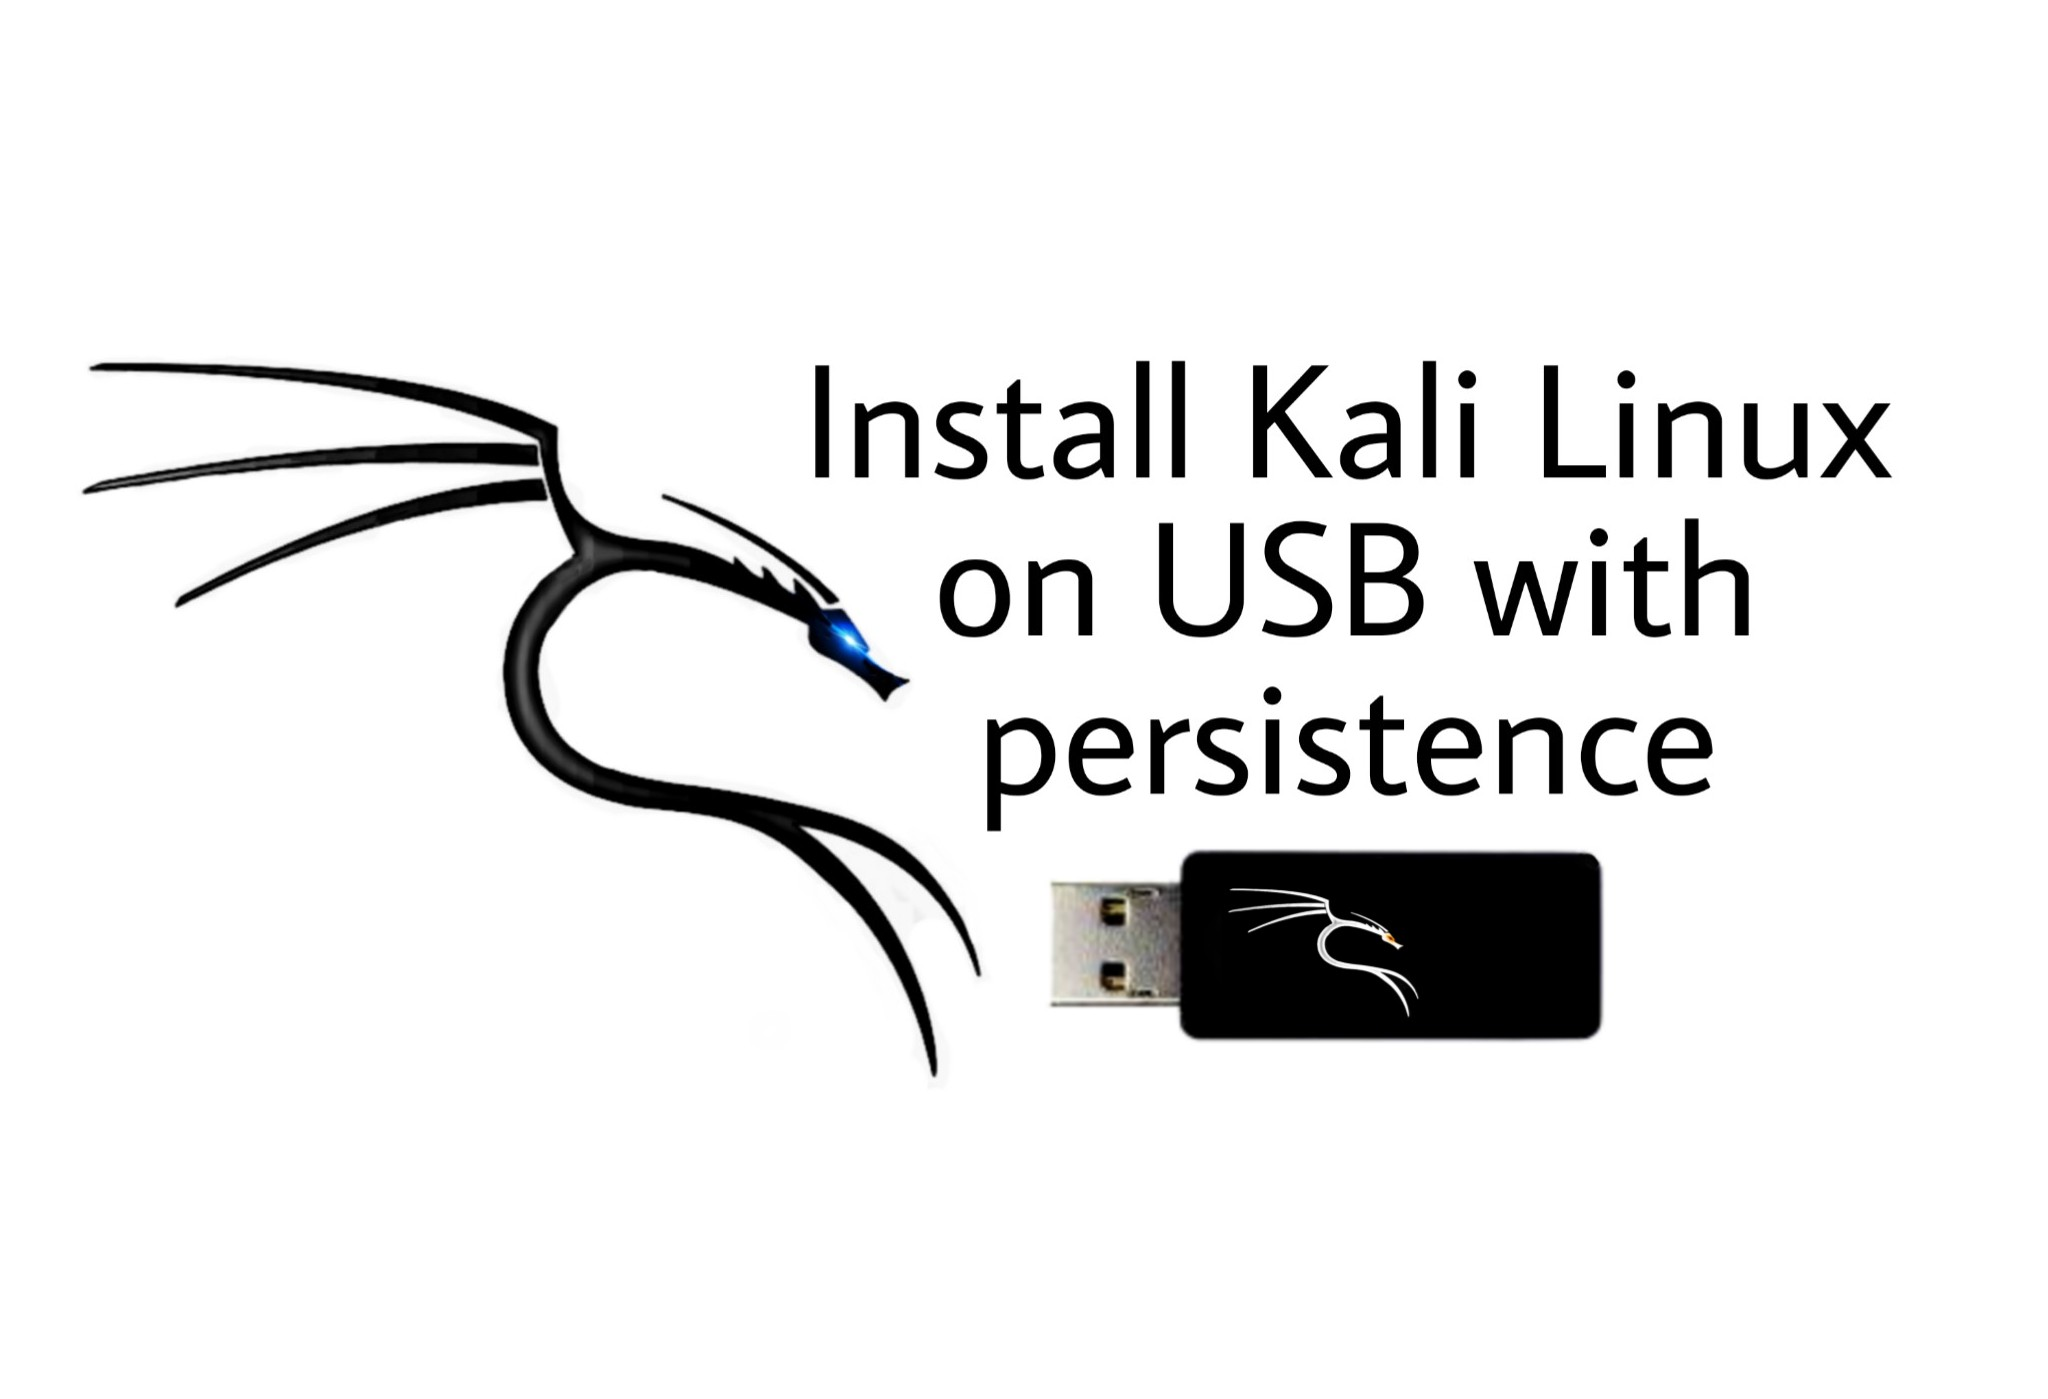 install kali linux on usb with persistence